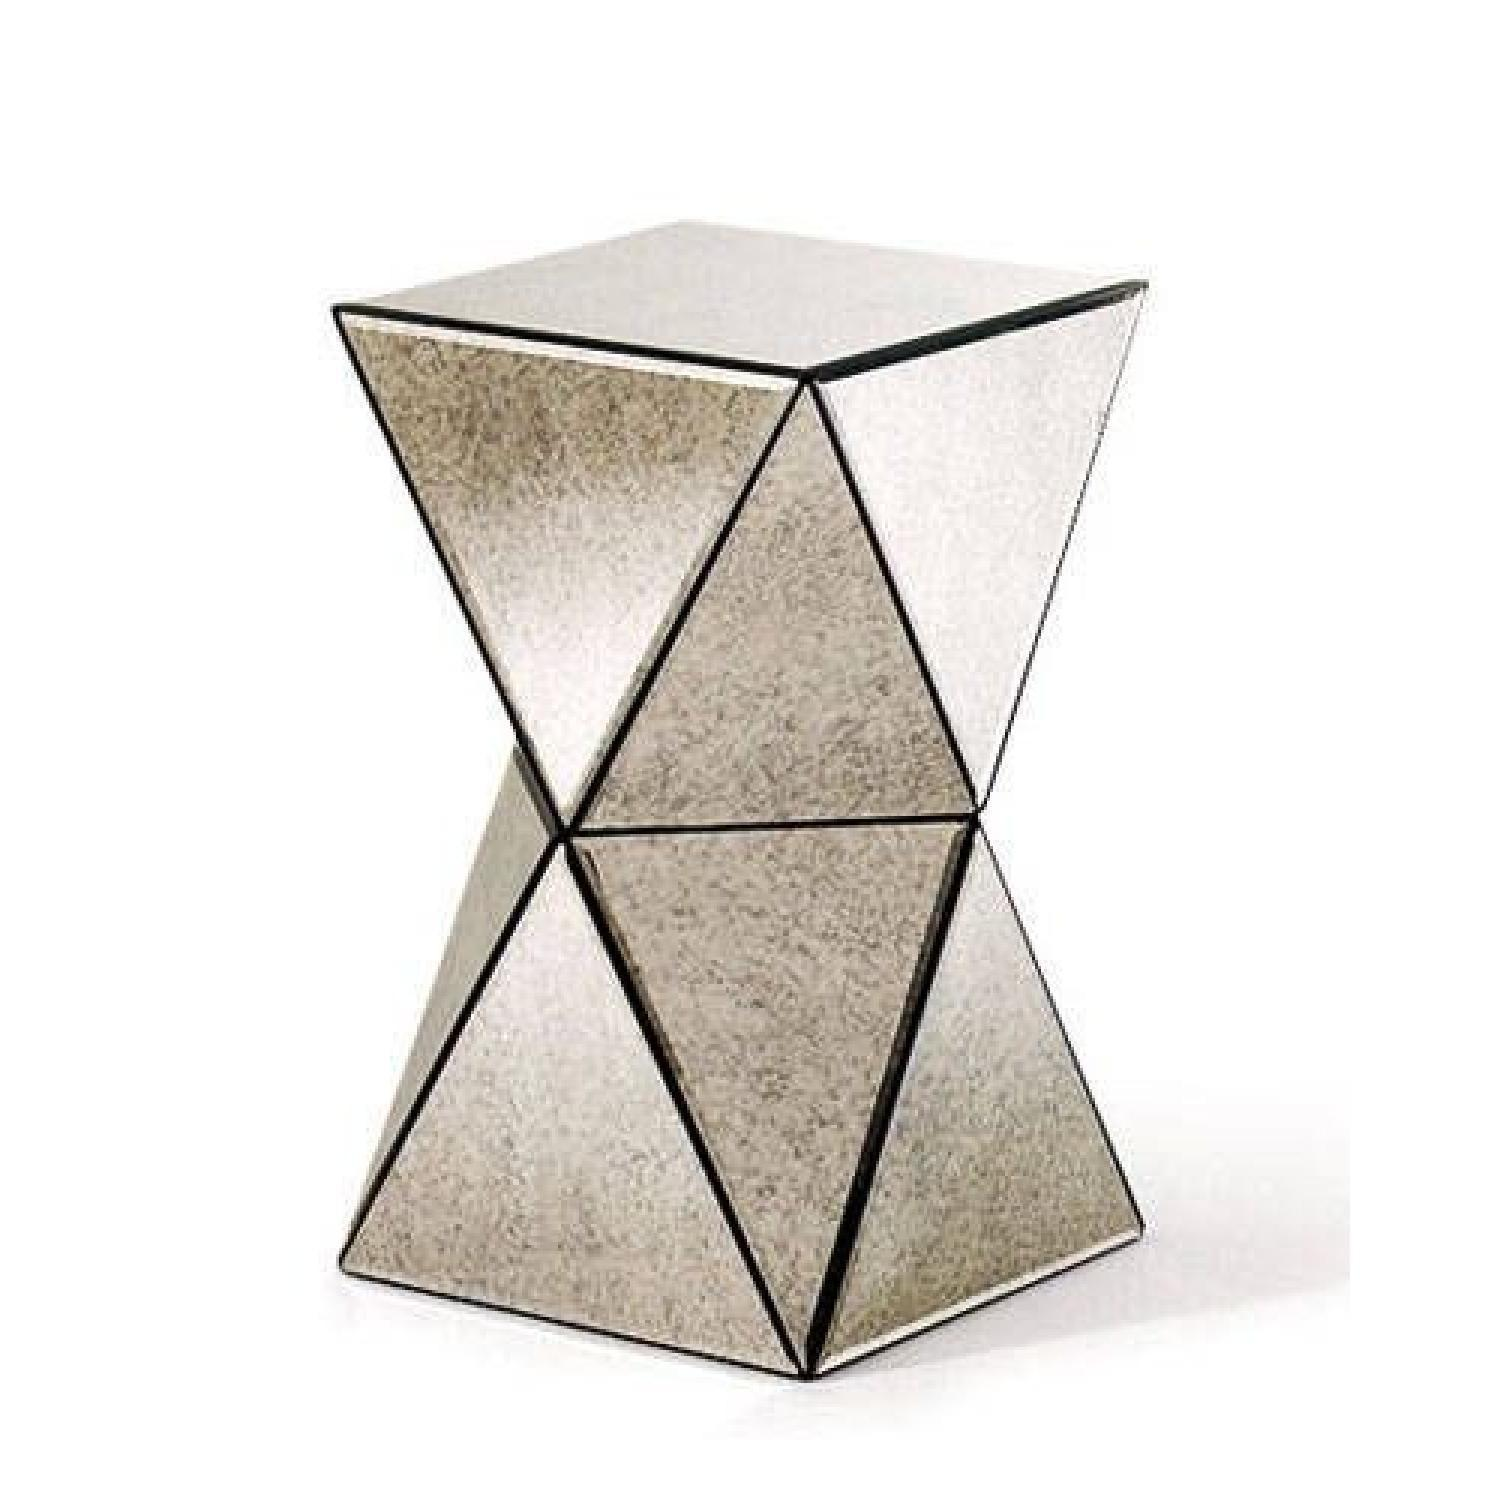 West Elm Faceted Antique Mirrored Side Table